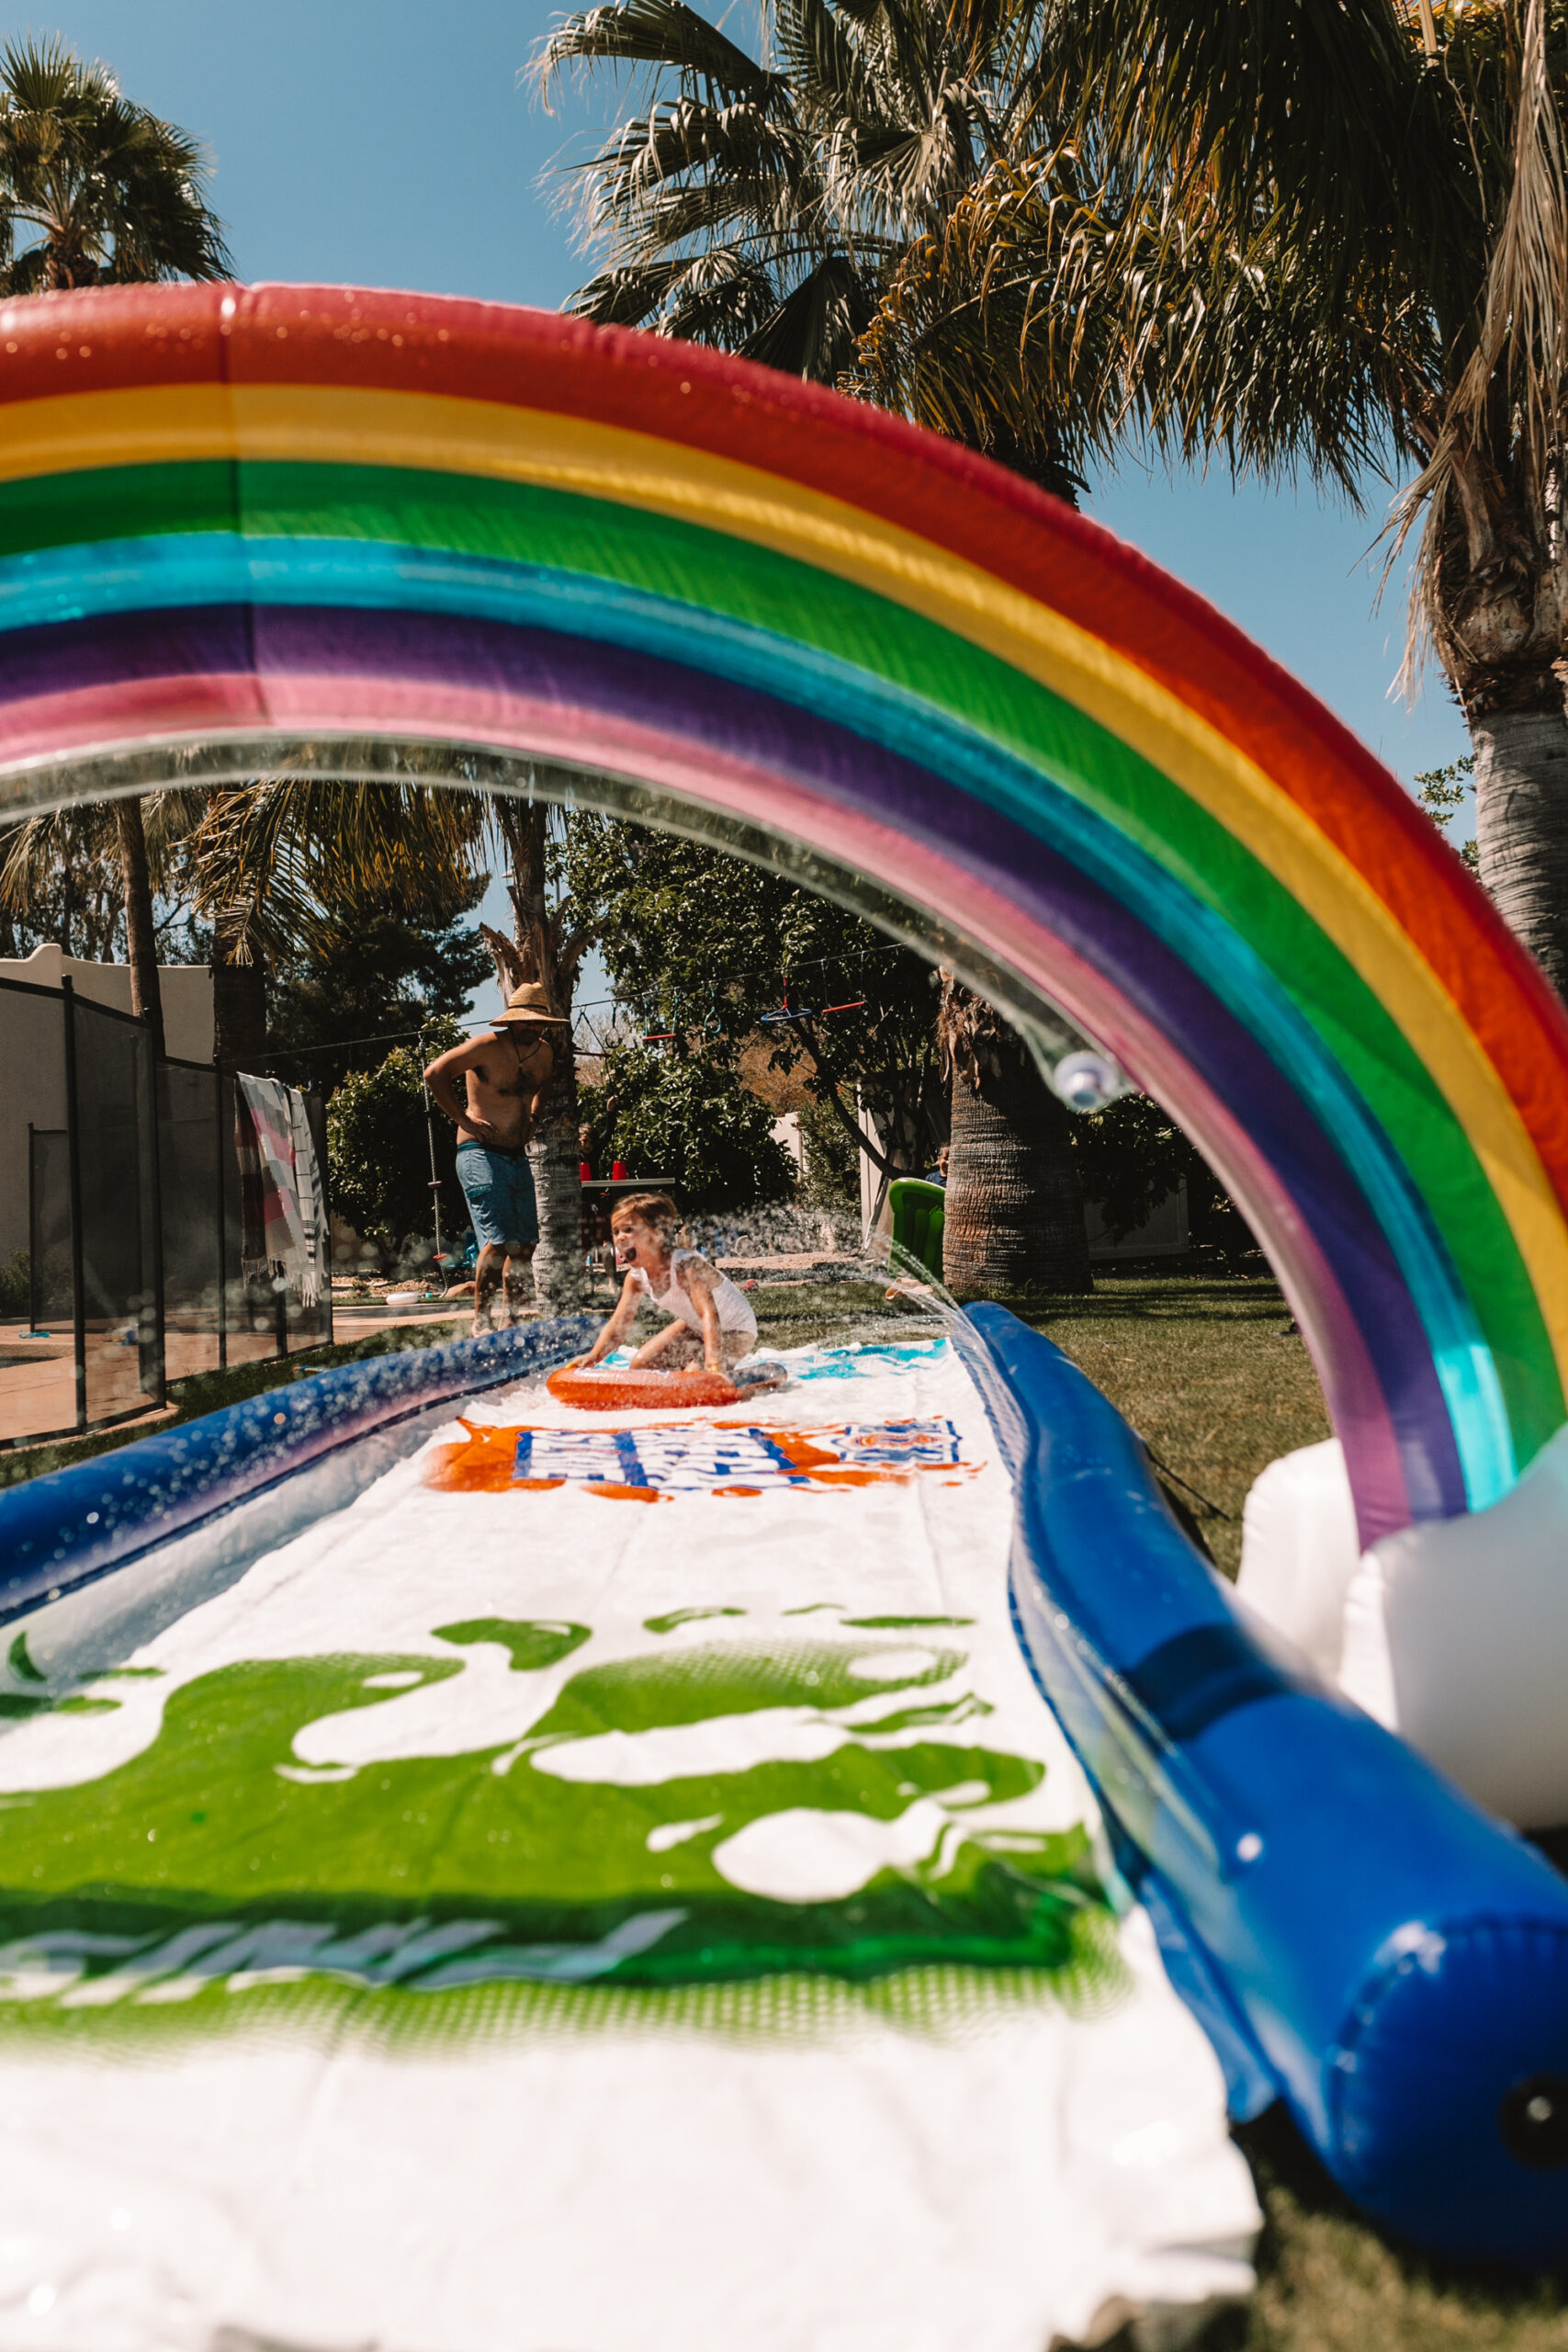 slip and slide with a rainbow sprinkler for our backyard field day! #slipandslide #backyardfun